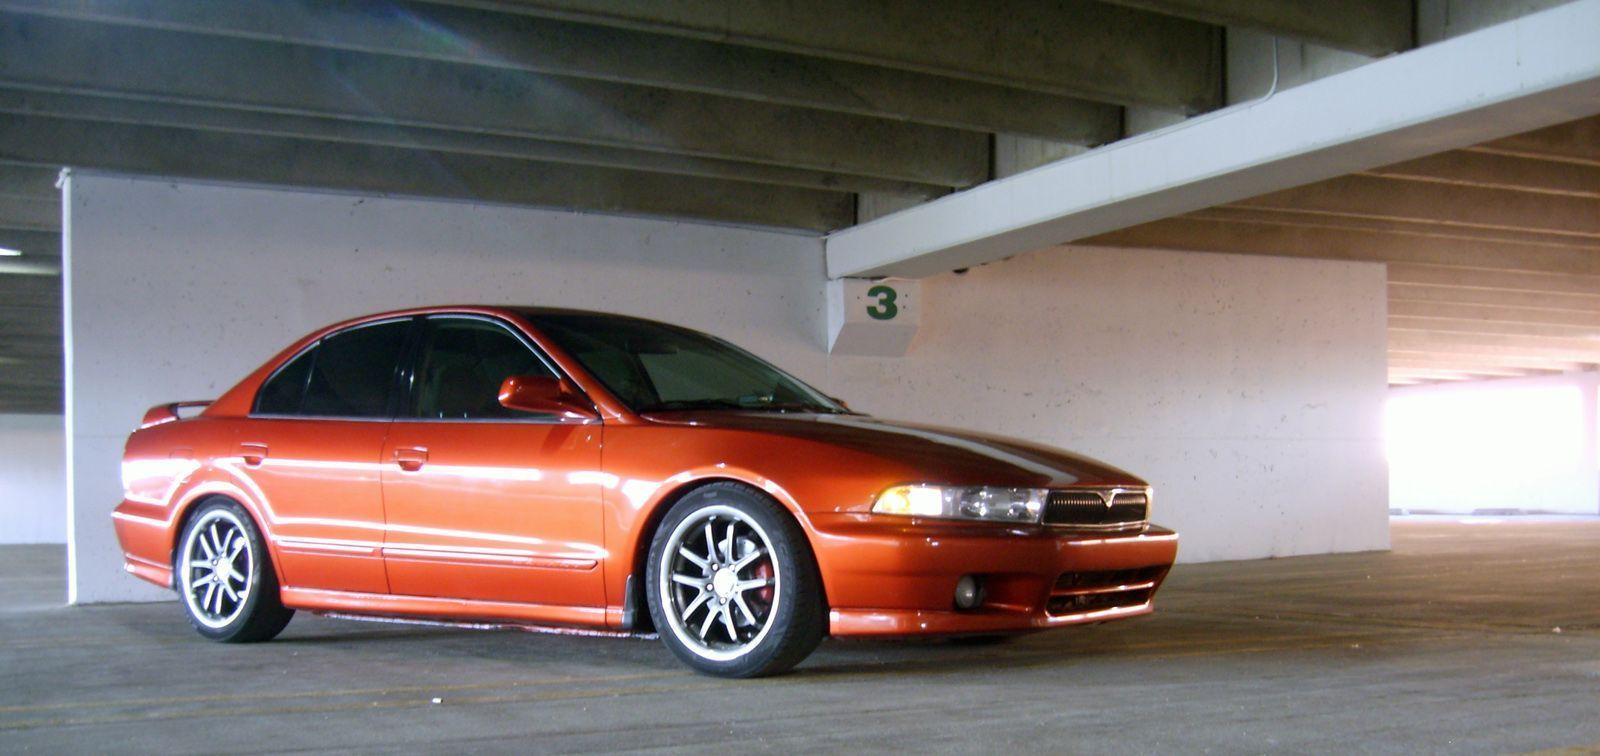 mitsubishi galant 21 cool - photo #26